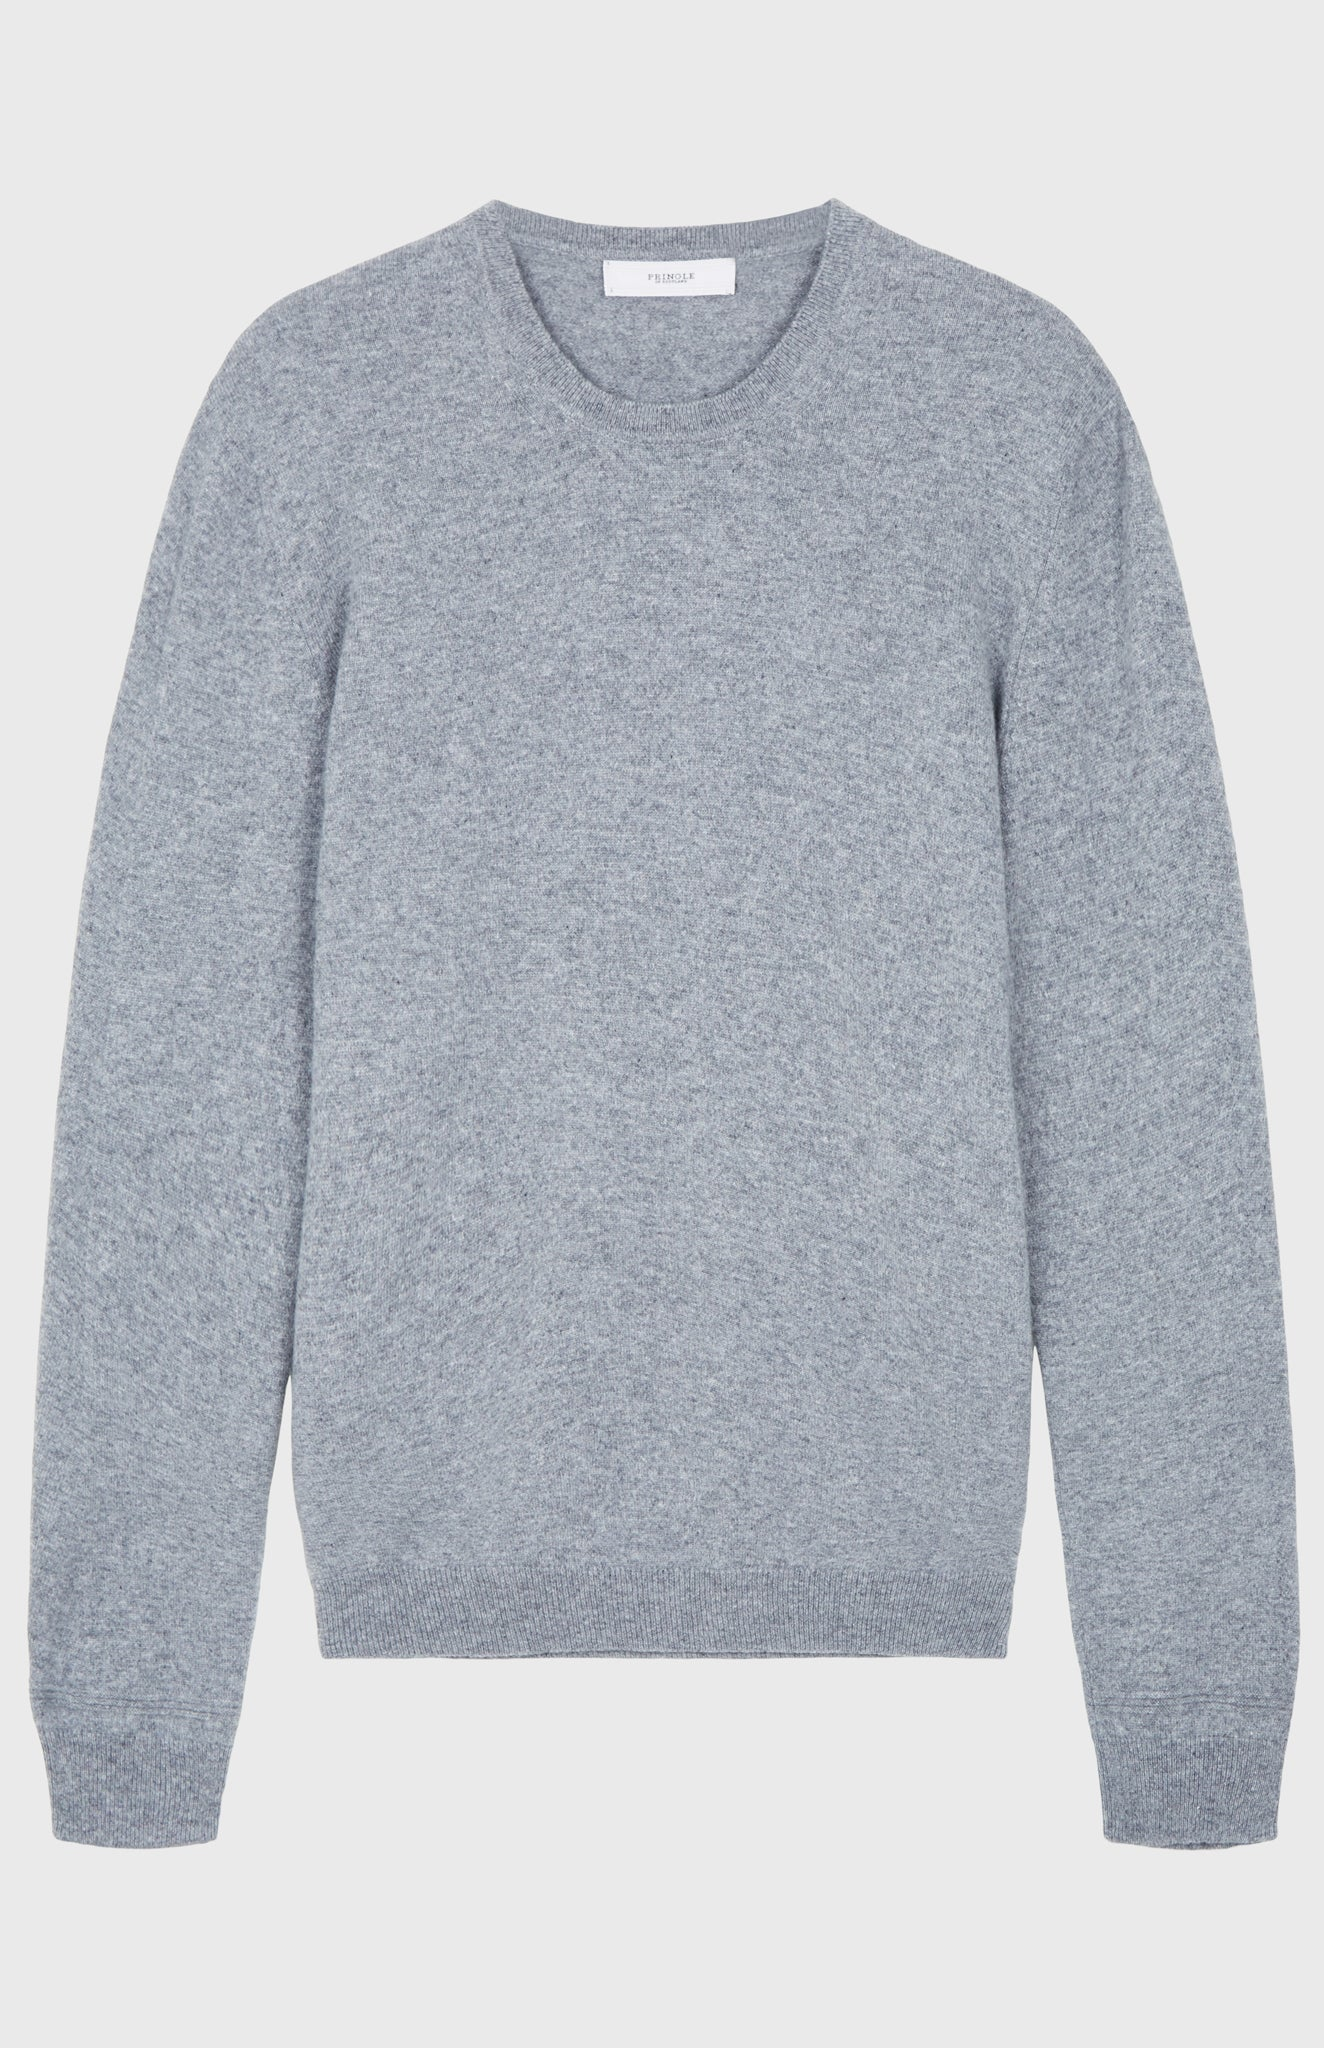 Men's Scottish Cashmere Round Neck Jumper In Flannel Grey